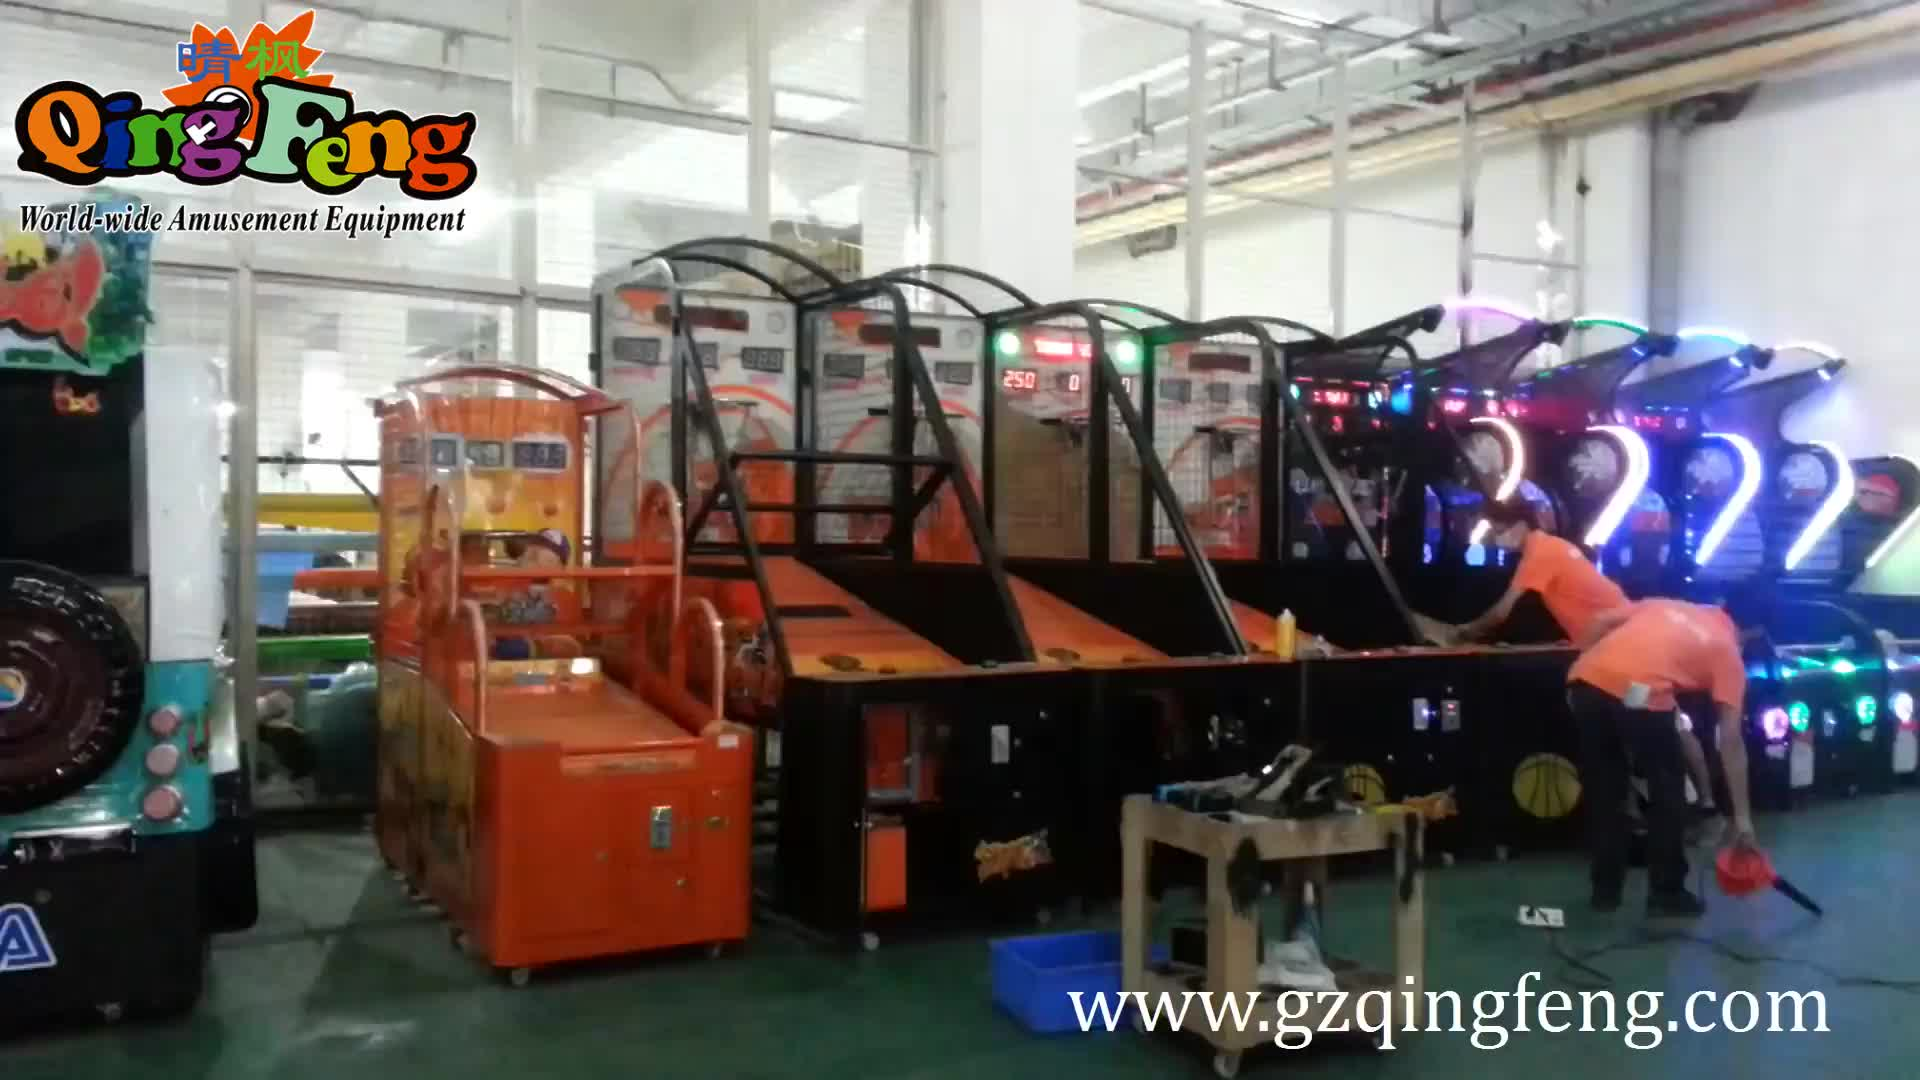 hot sale indoor coin operated crazy hoop street basketball arcade game machine new basketball game machine